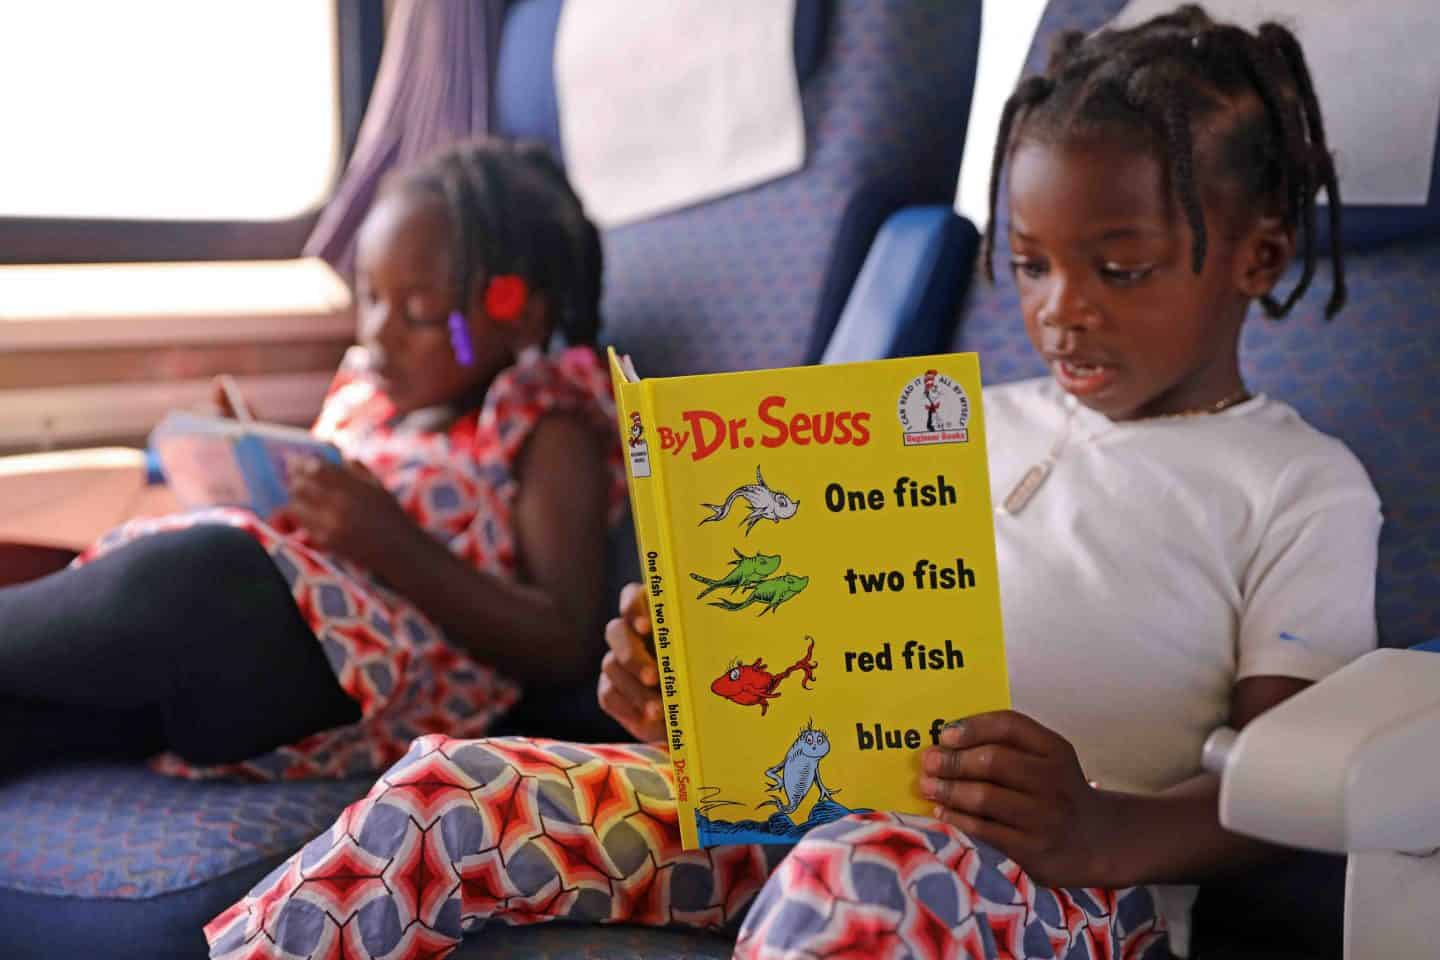 Two girls reading Dr. Suess books on the Los Angeles To San Diego Amtrak Train